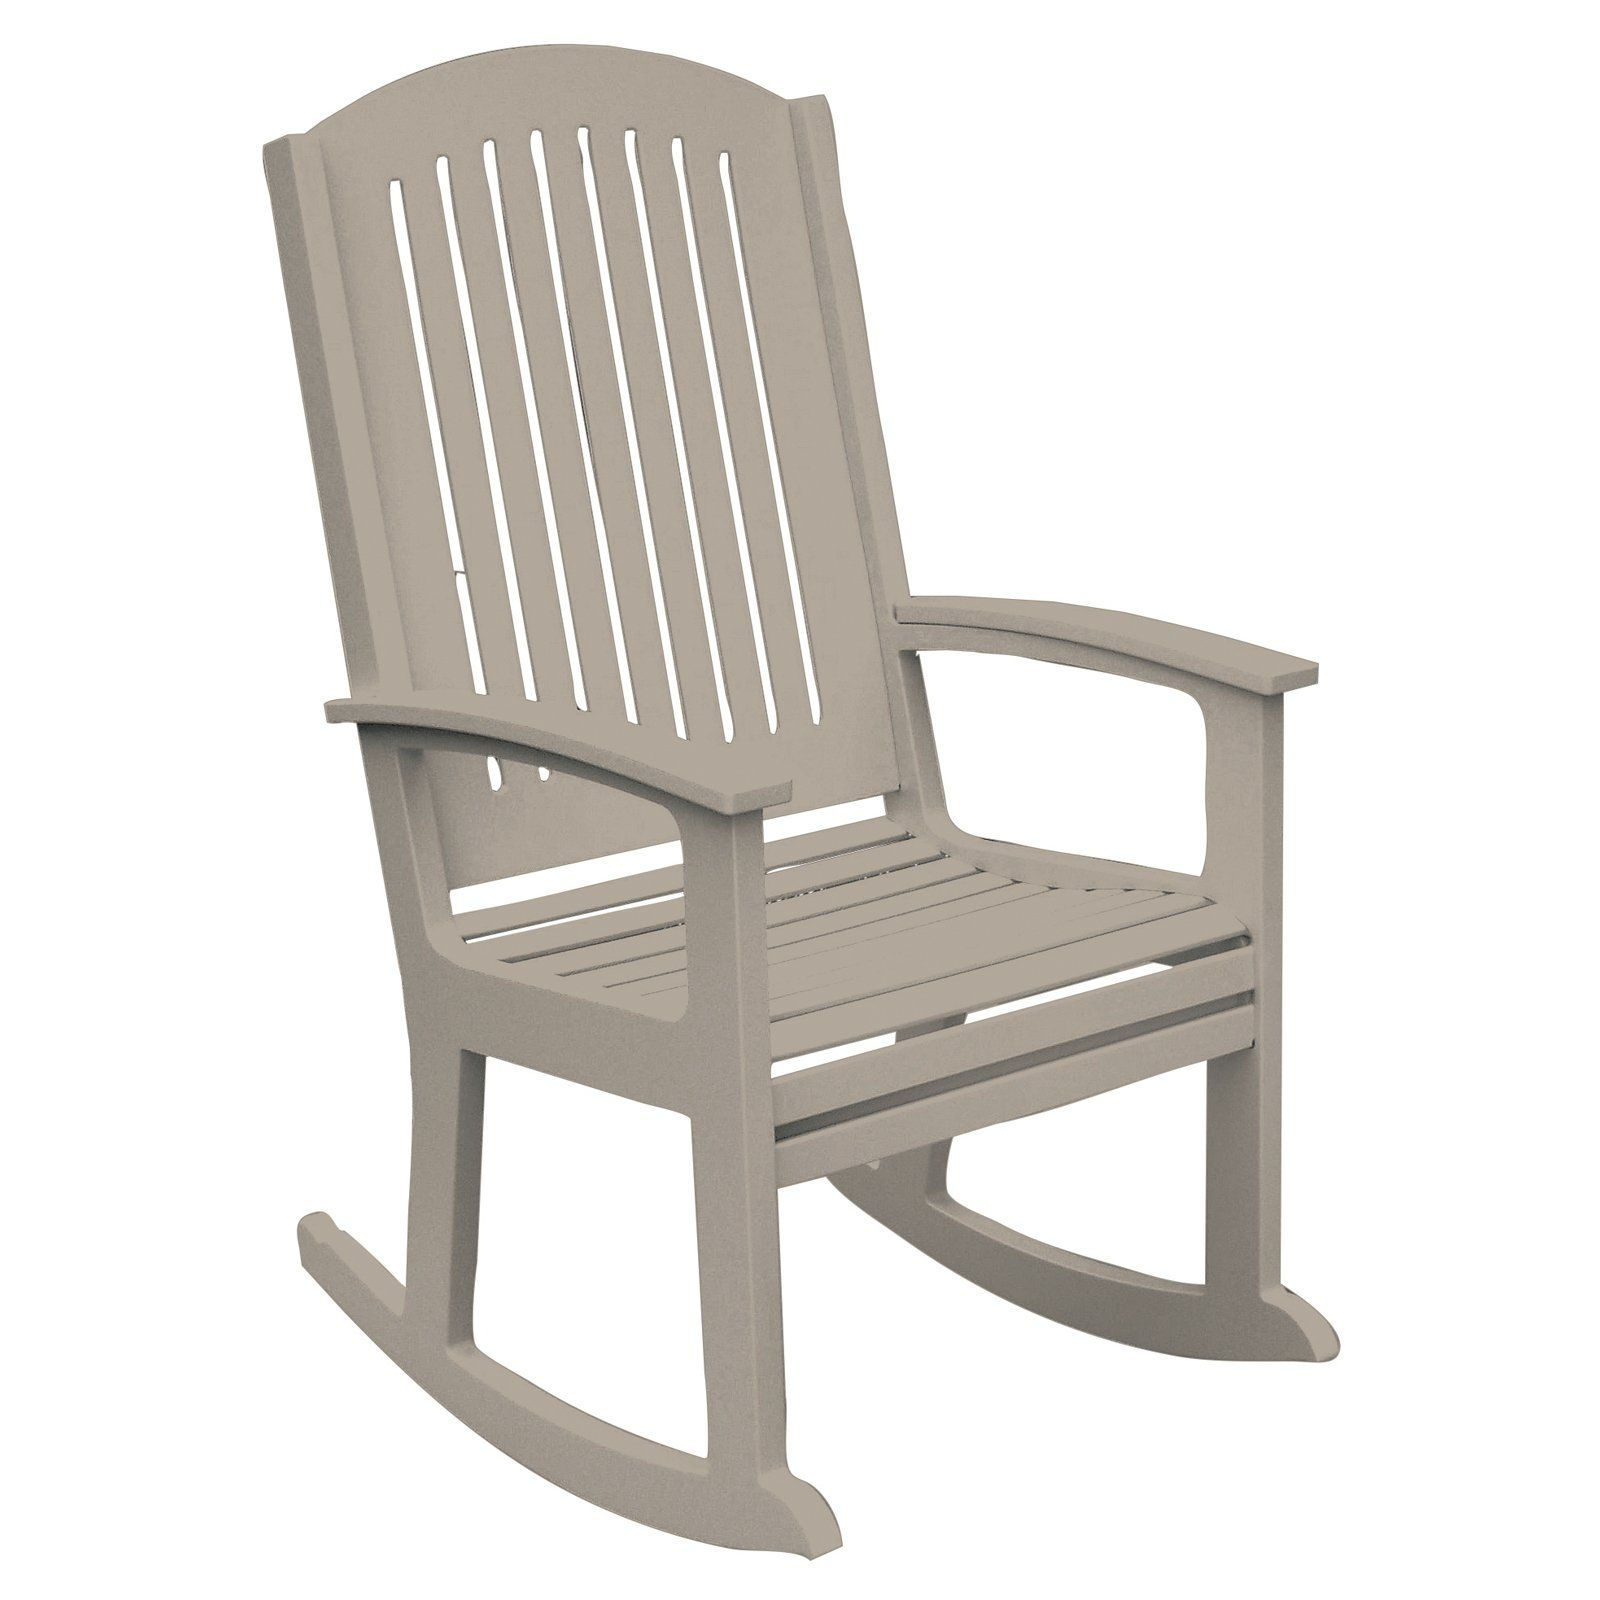 High Back Rocking Chairs Inside Most Recently Released Poly Concepts Outdoor Andureflex High Back Rocker (View 5 of 15)